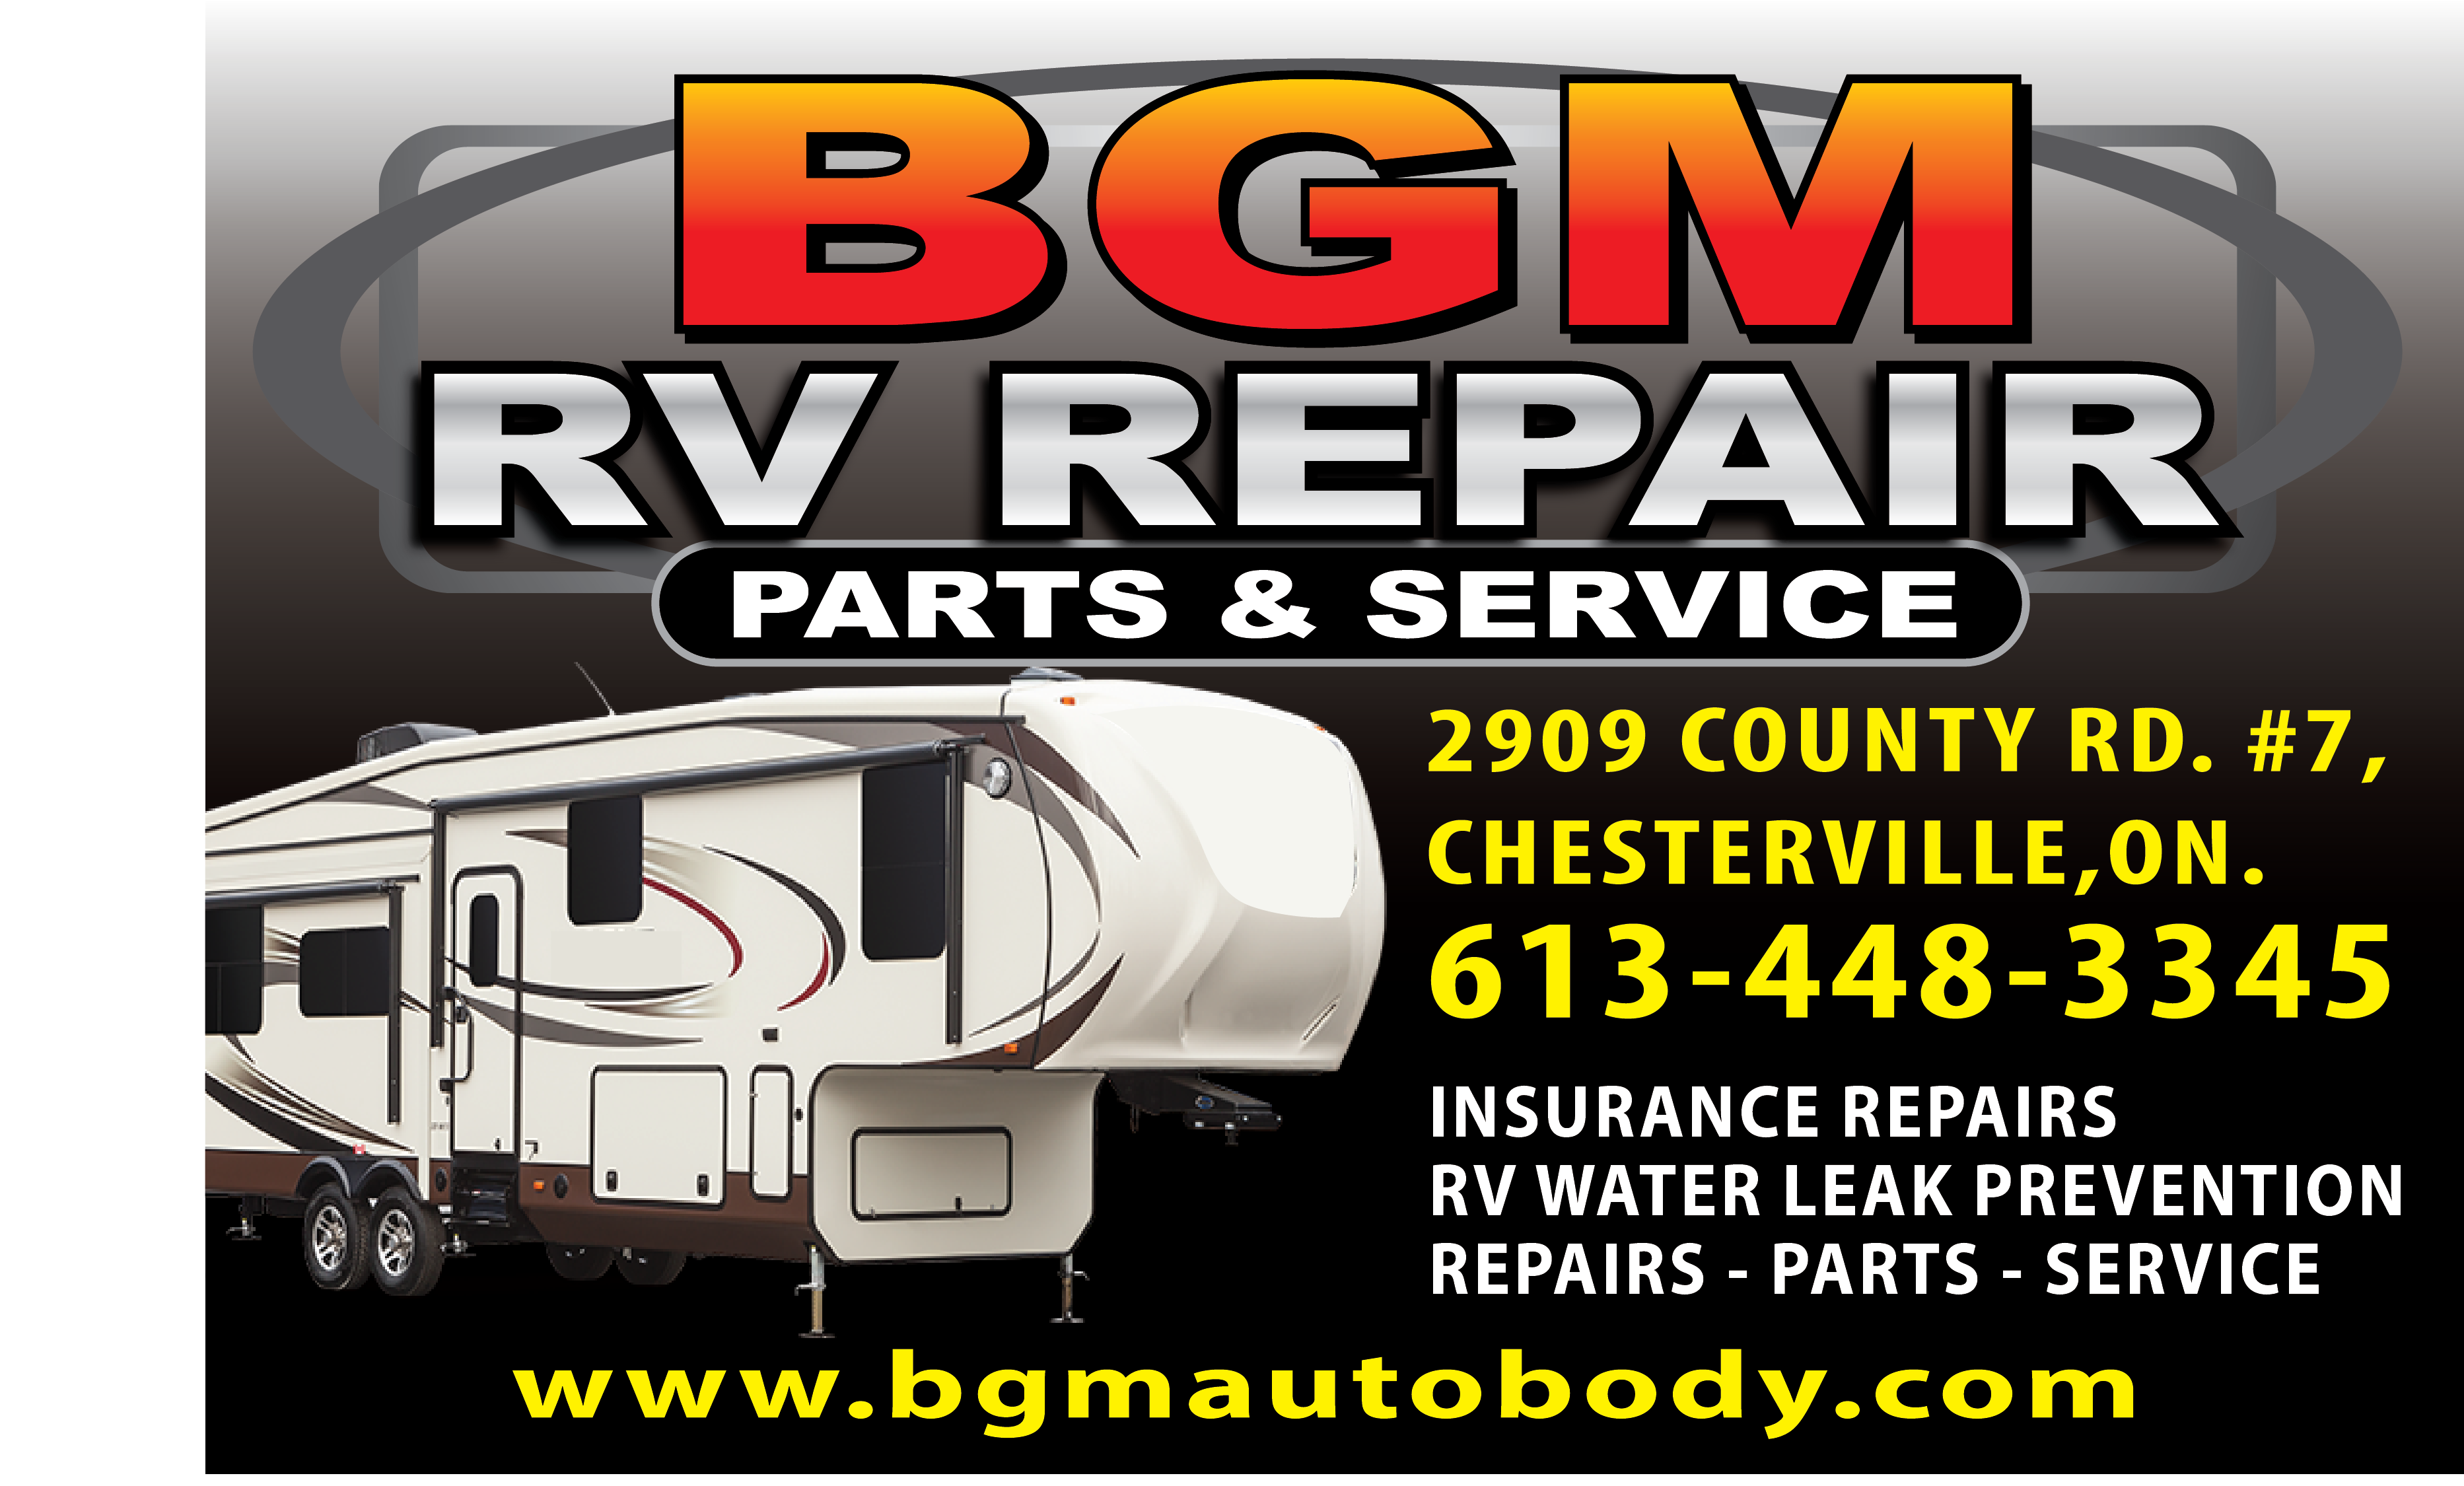 BGM RV Centre